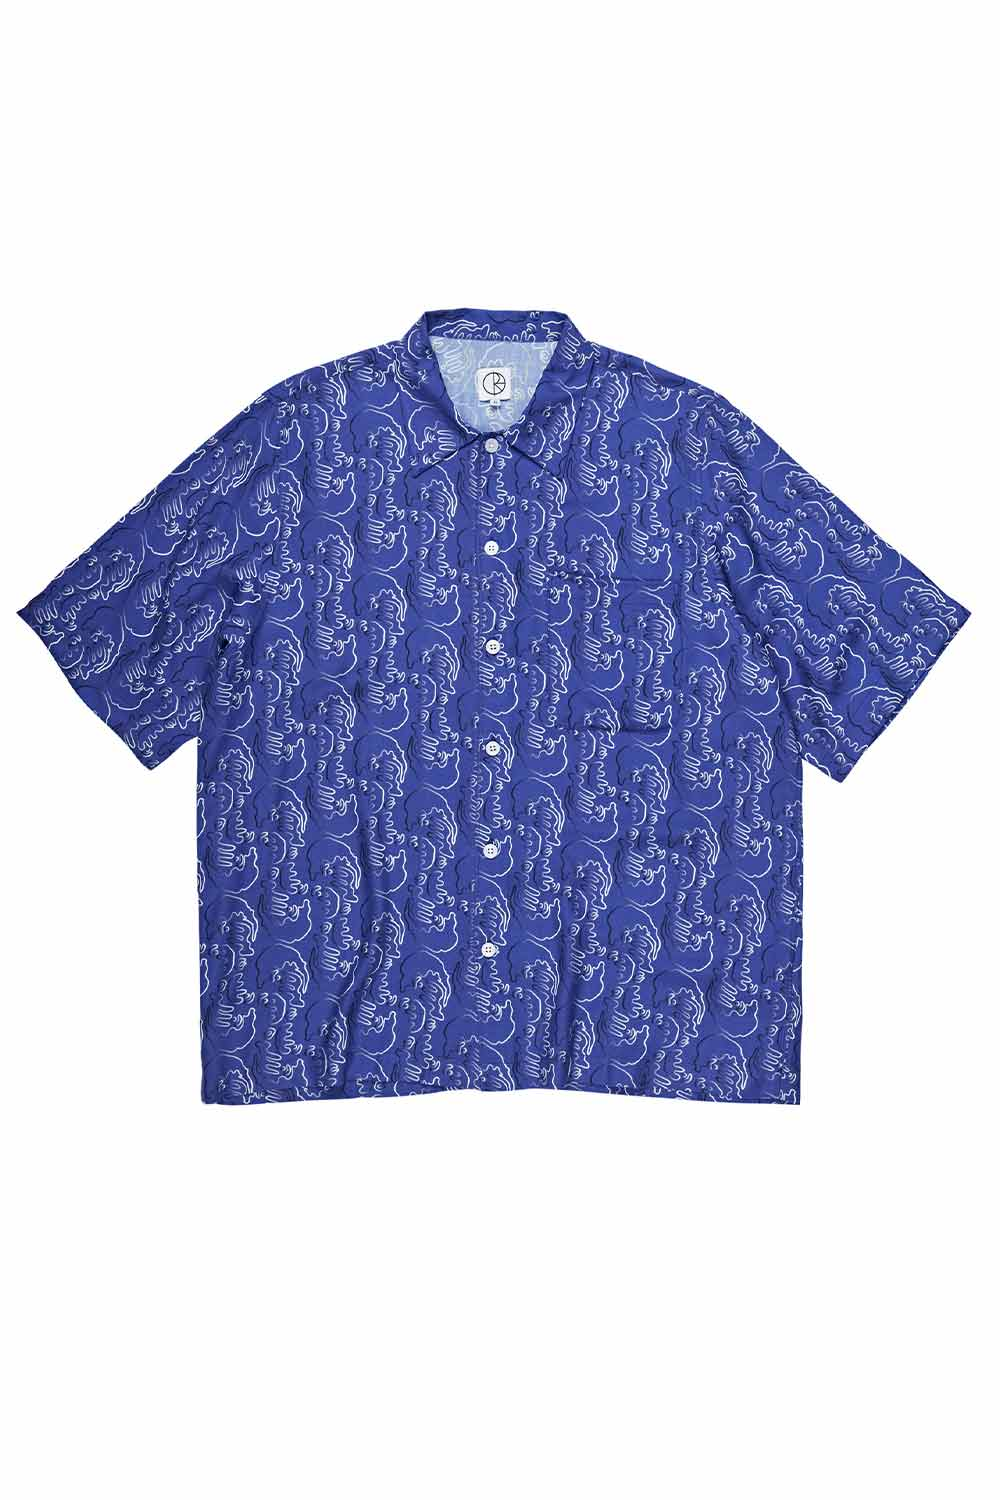 Polar Skate Co Art Shirt Faces - Blue | Buy Polar Skate Co Online